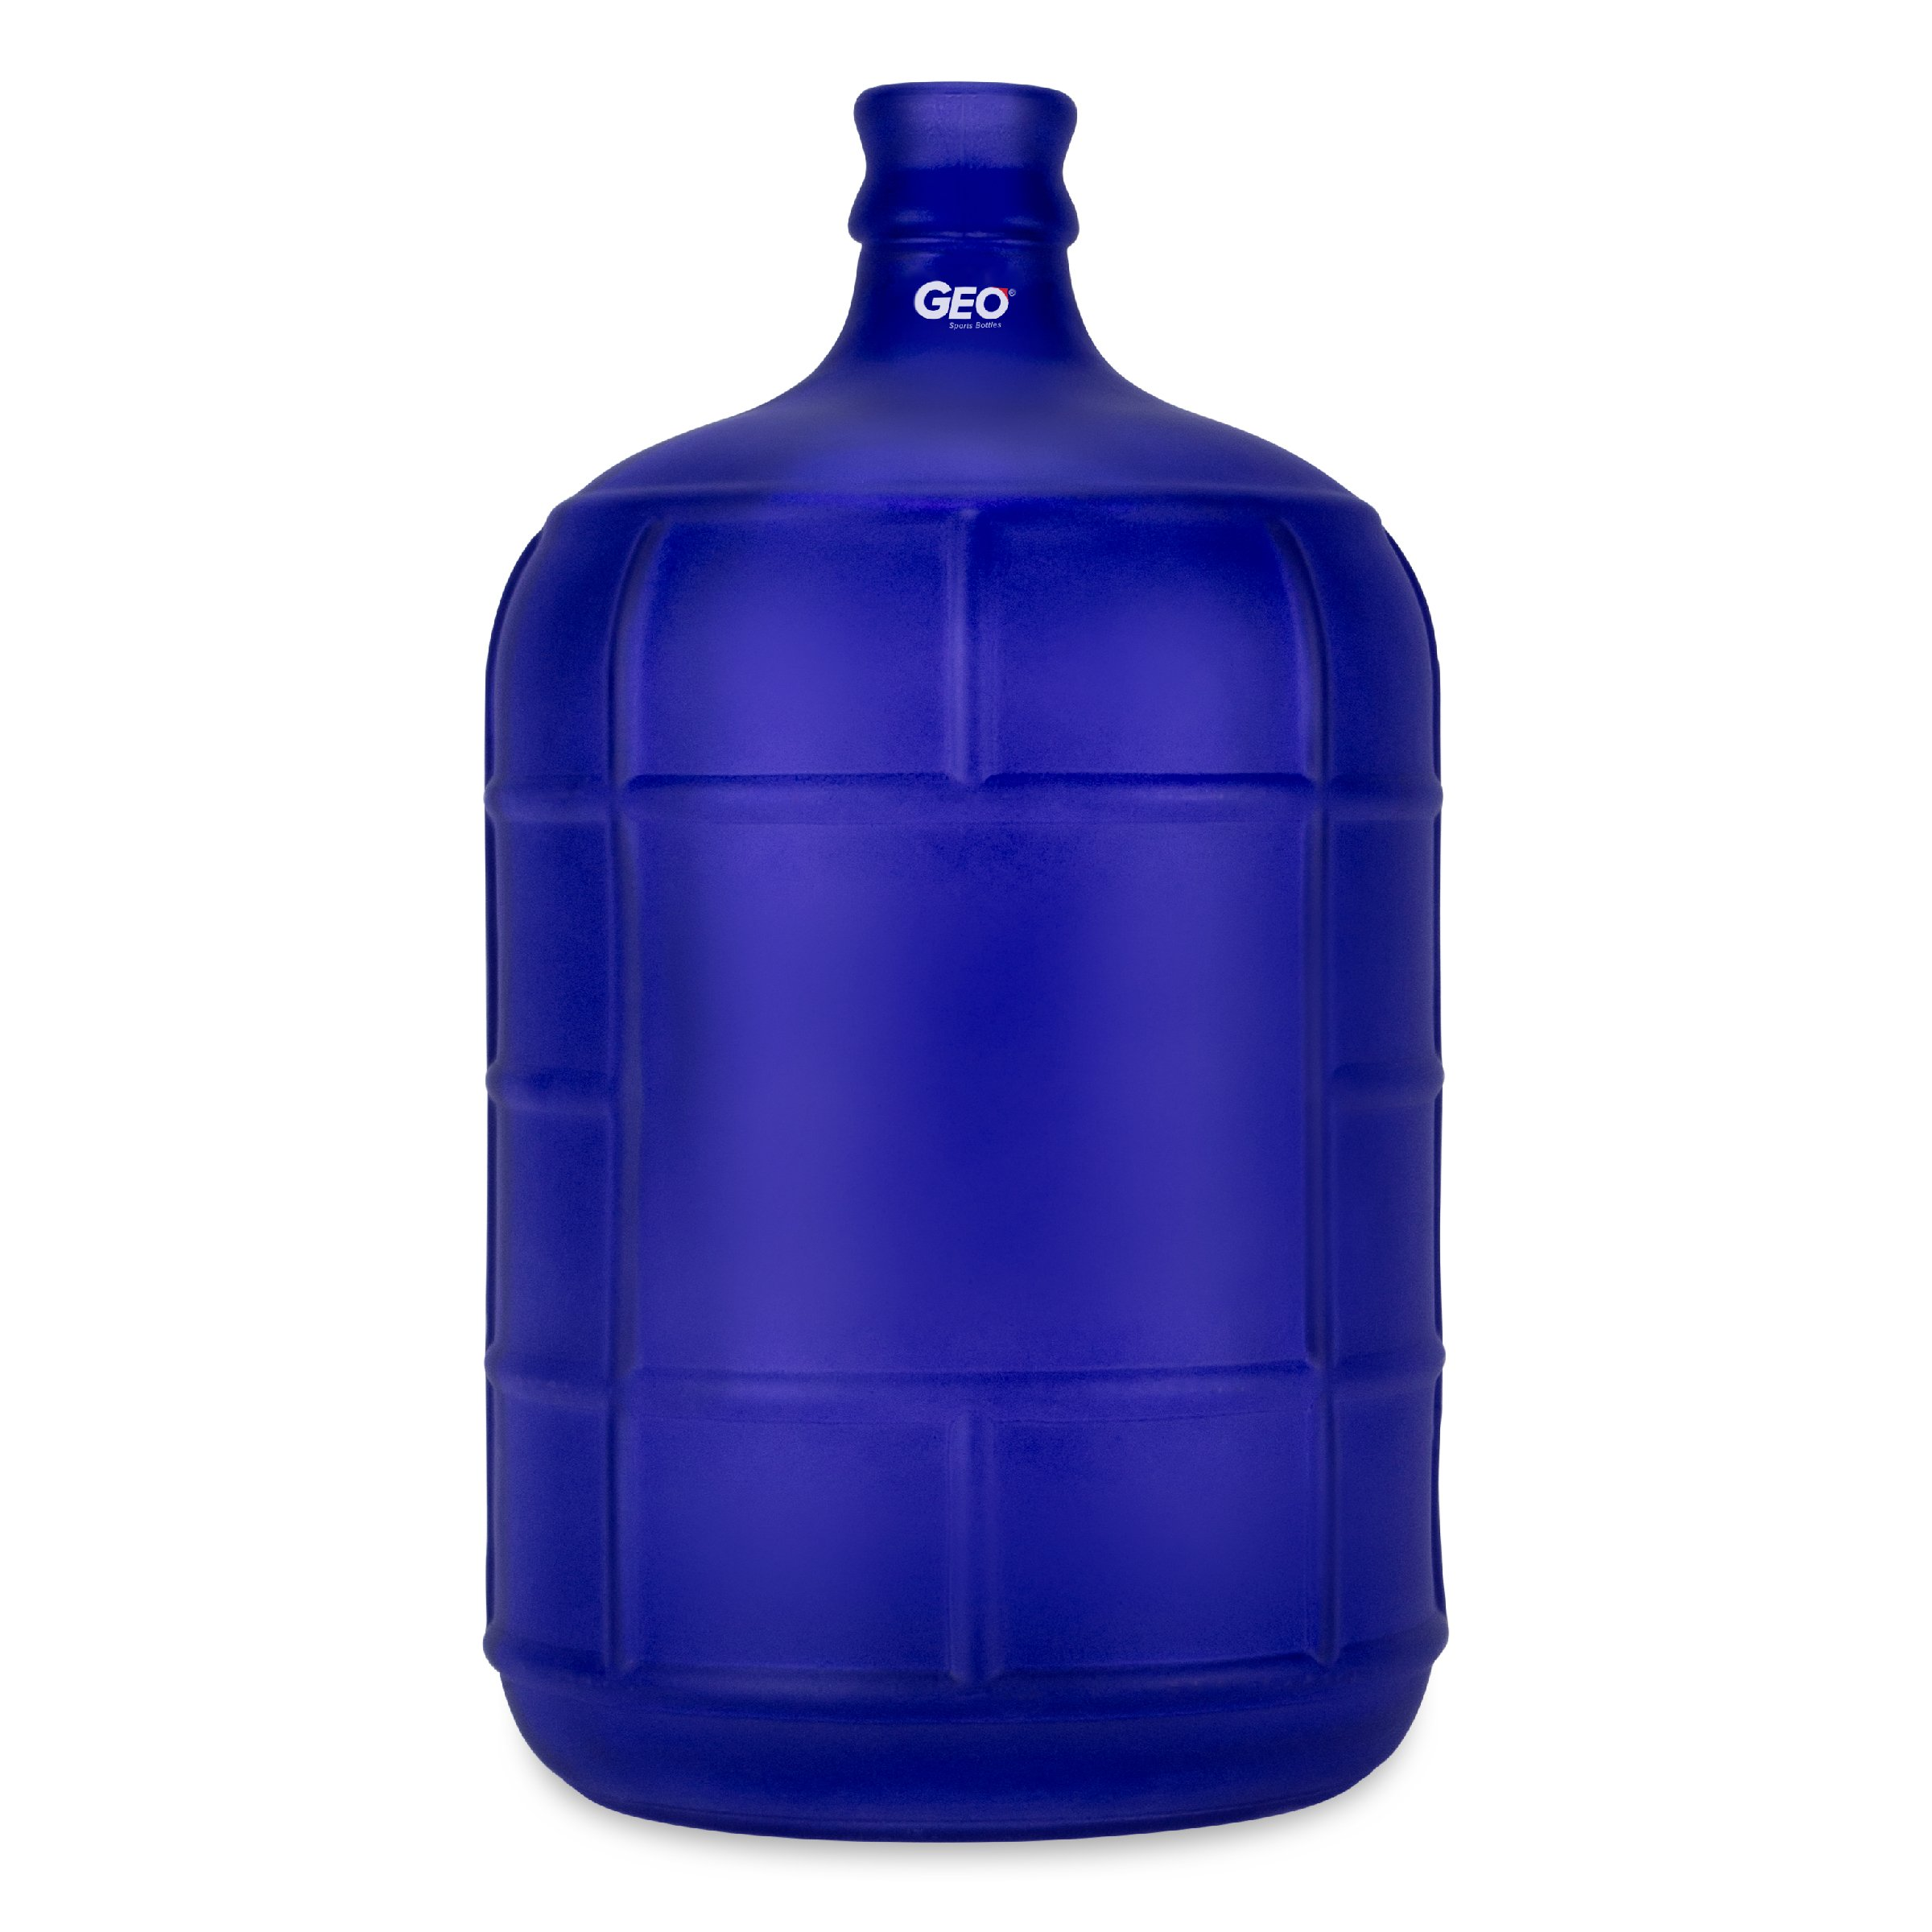 Geo Sports Bottles 3 Gallon Round Glass Carboy fits 30mm Cork Finish or 55mm Push Cap Home Brew (Frosted Dark Blue)